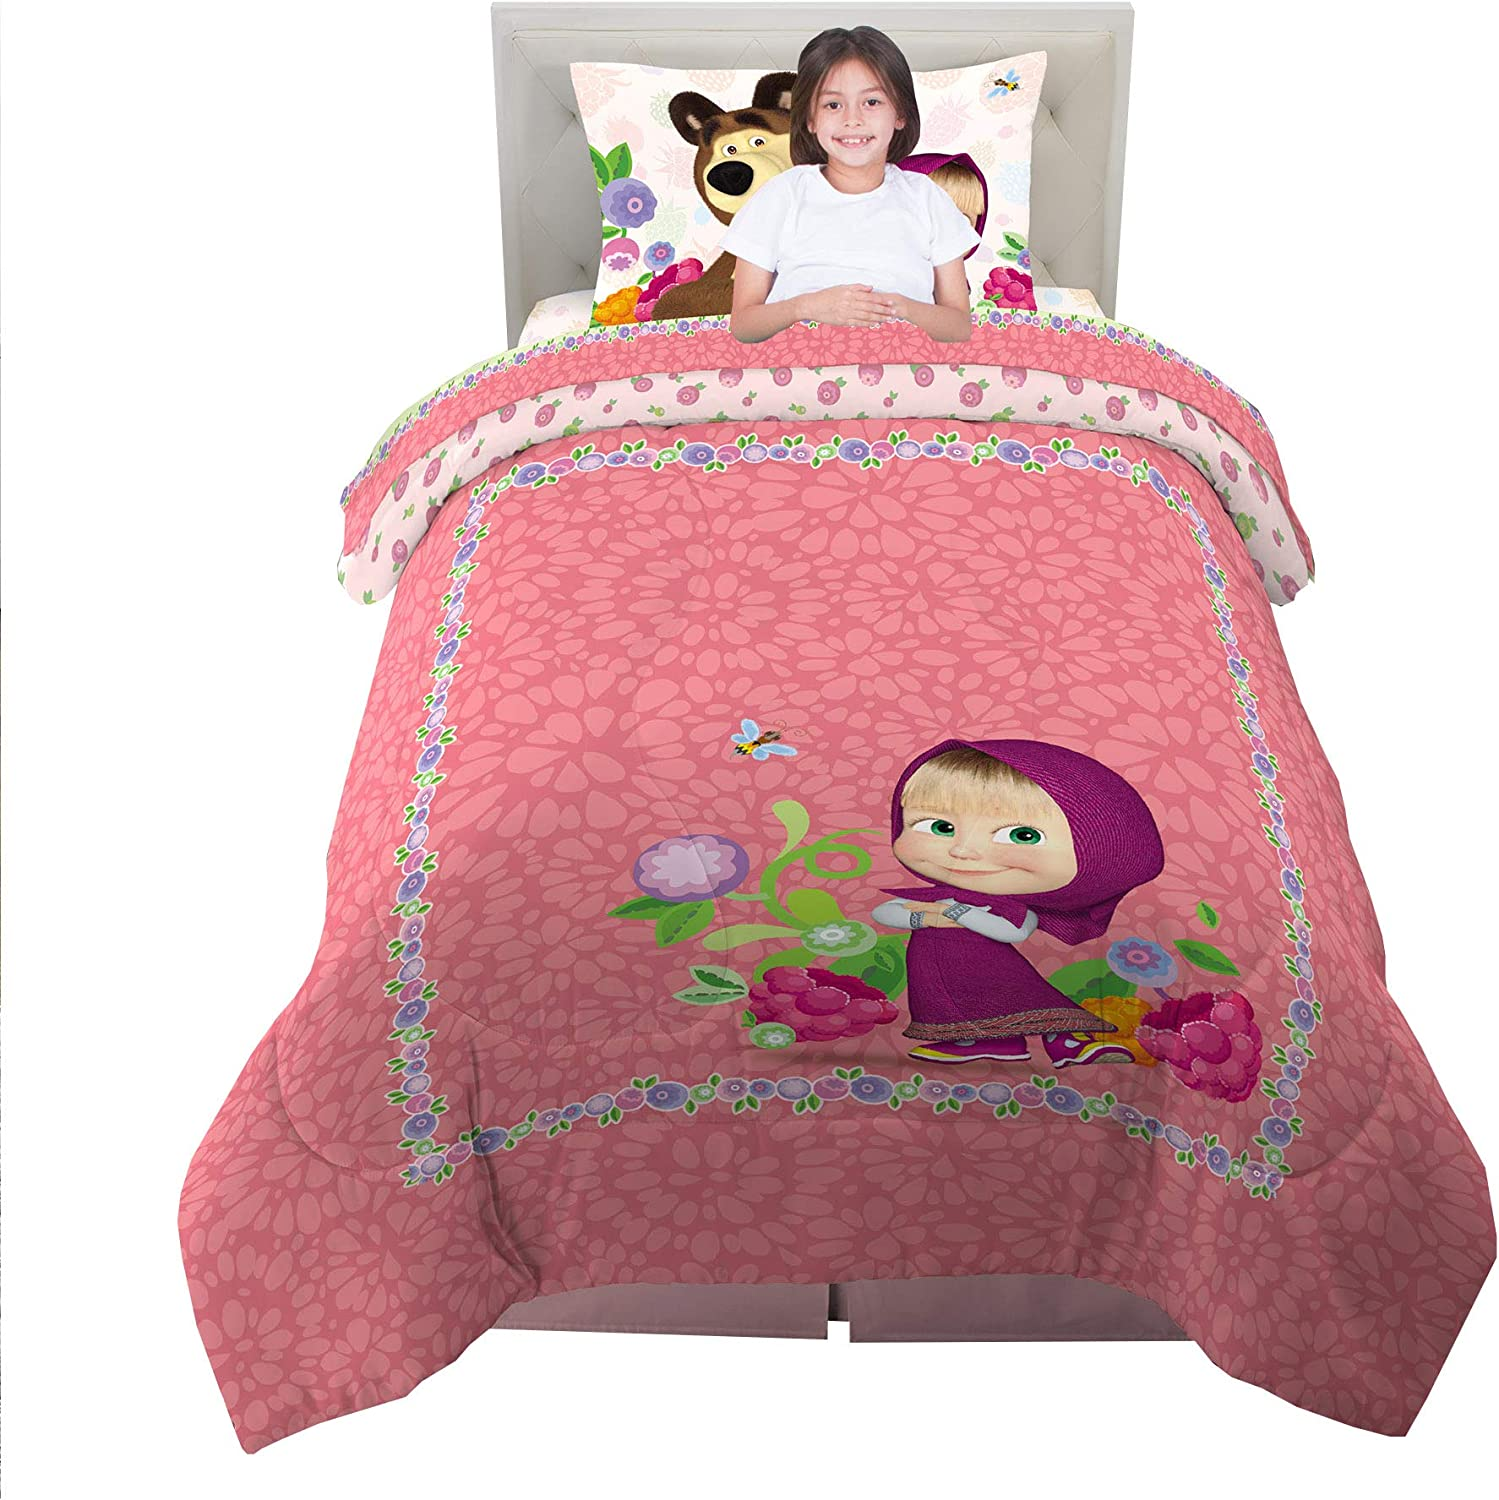 Masha and The Bear 5 Piece Full Size Franco Kids Bedding Comforter and Sheet Set